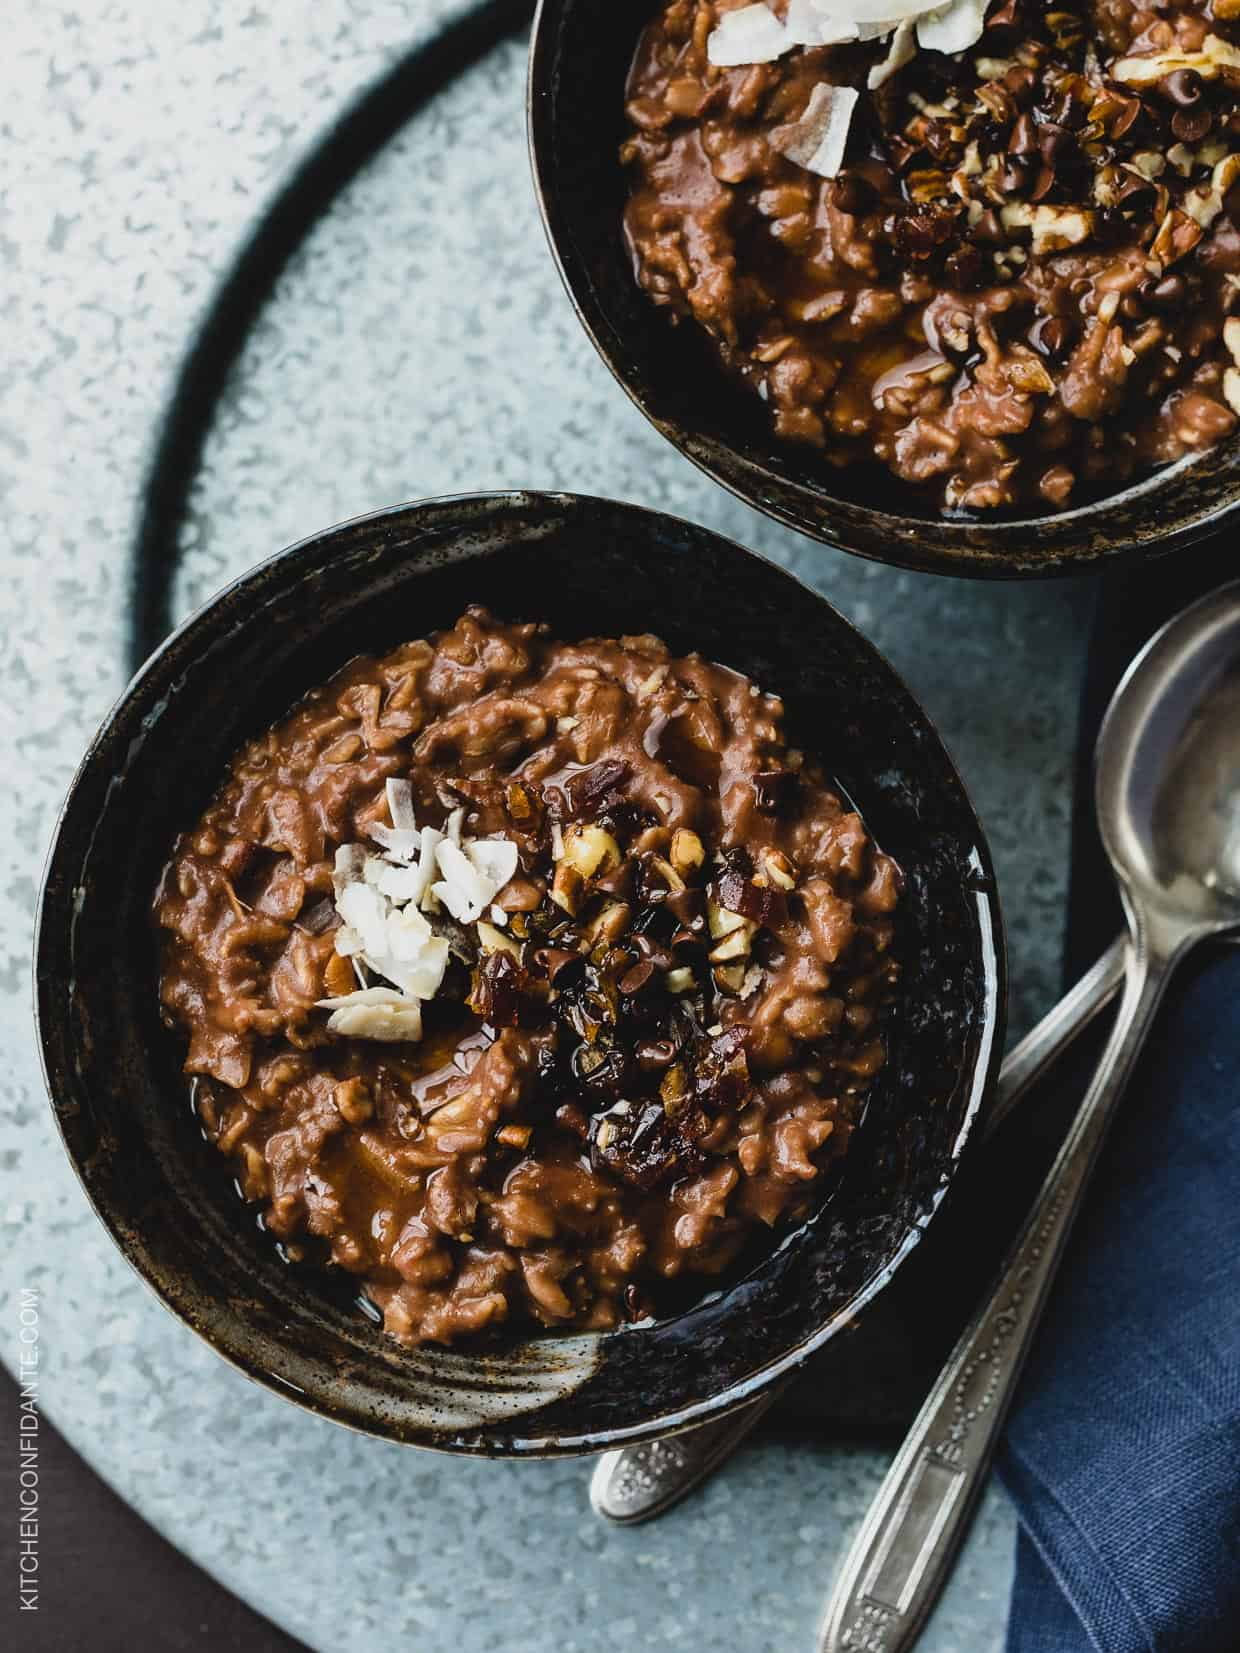 This indulgent Chocolate Coconut Oat Porridge is better for you than you think! Try this recipe for a wholesome start to your day.